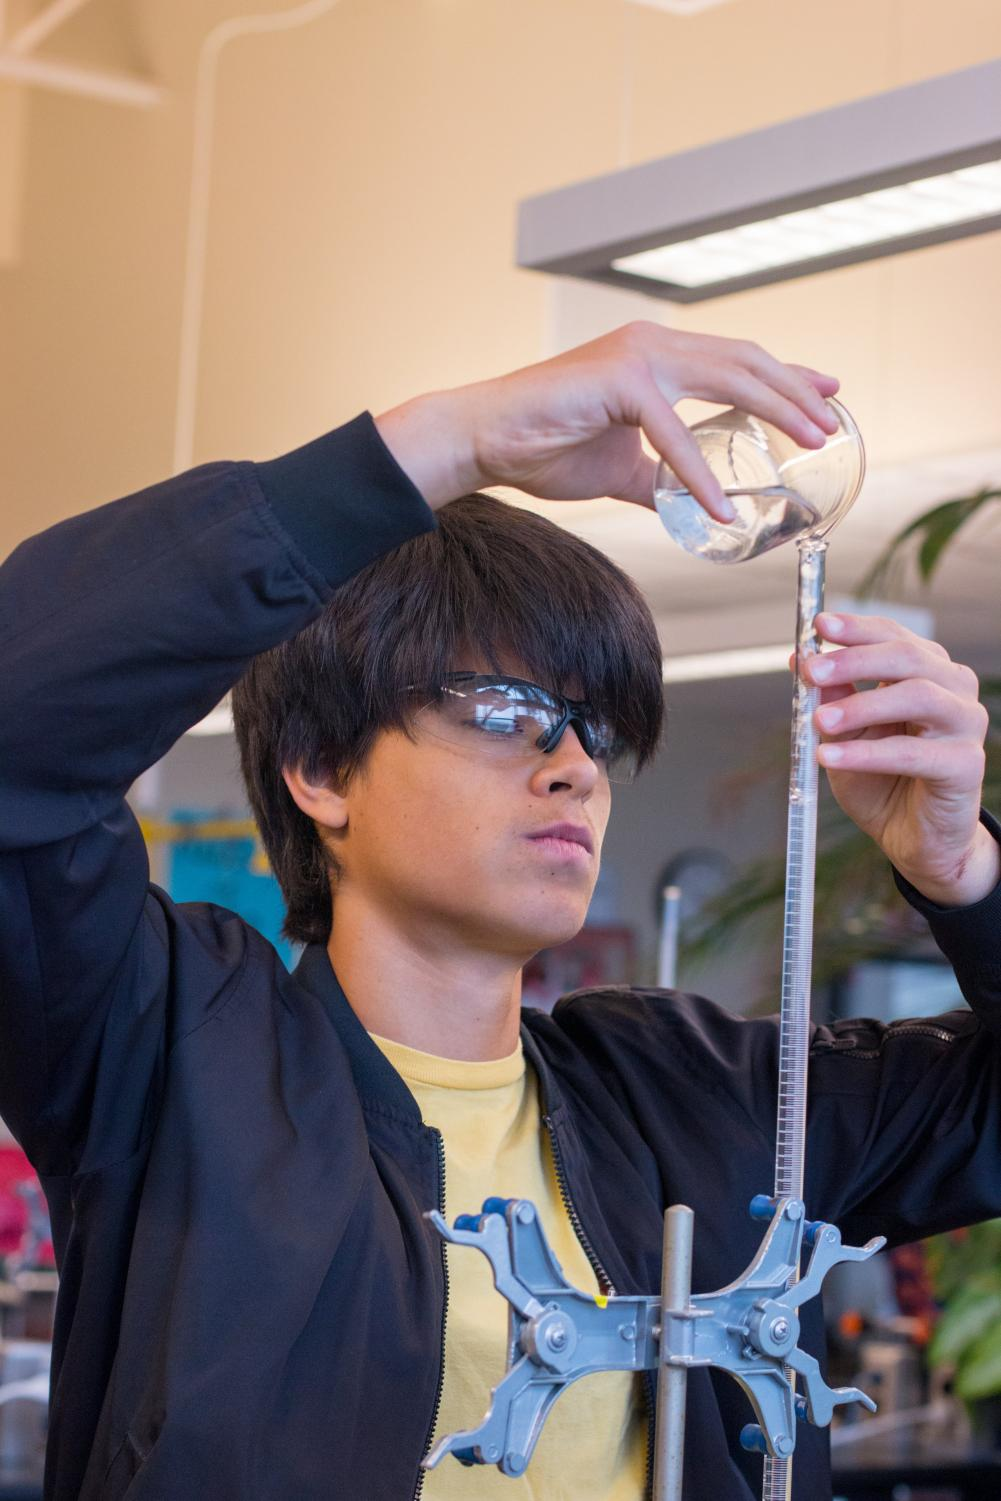 Junior Emilio Rosas-Linhard pours a solution into a graduated cylinder during a chemistry class. Even though the official measurement system is imperial, American scientists almost exclusively teach and use the metric system.